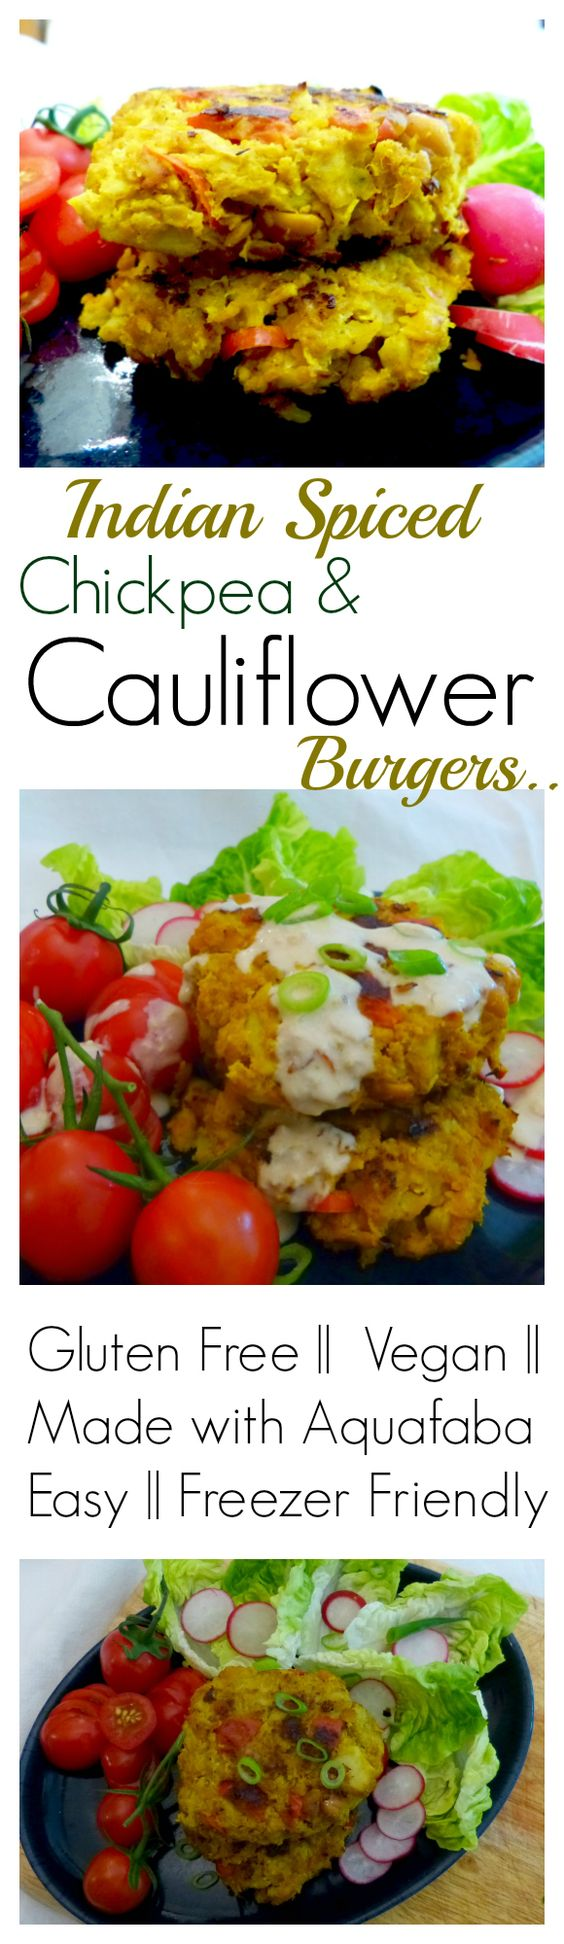 Chickpea and cauliflower patties - good way to use my chickpea flour! Must give a try!